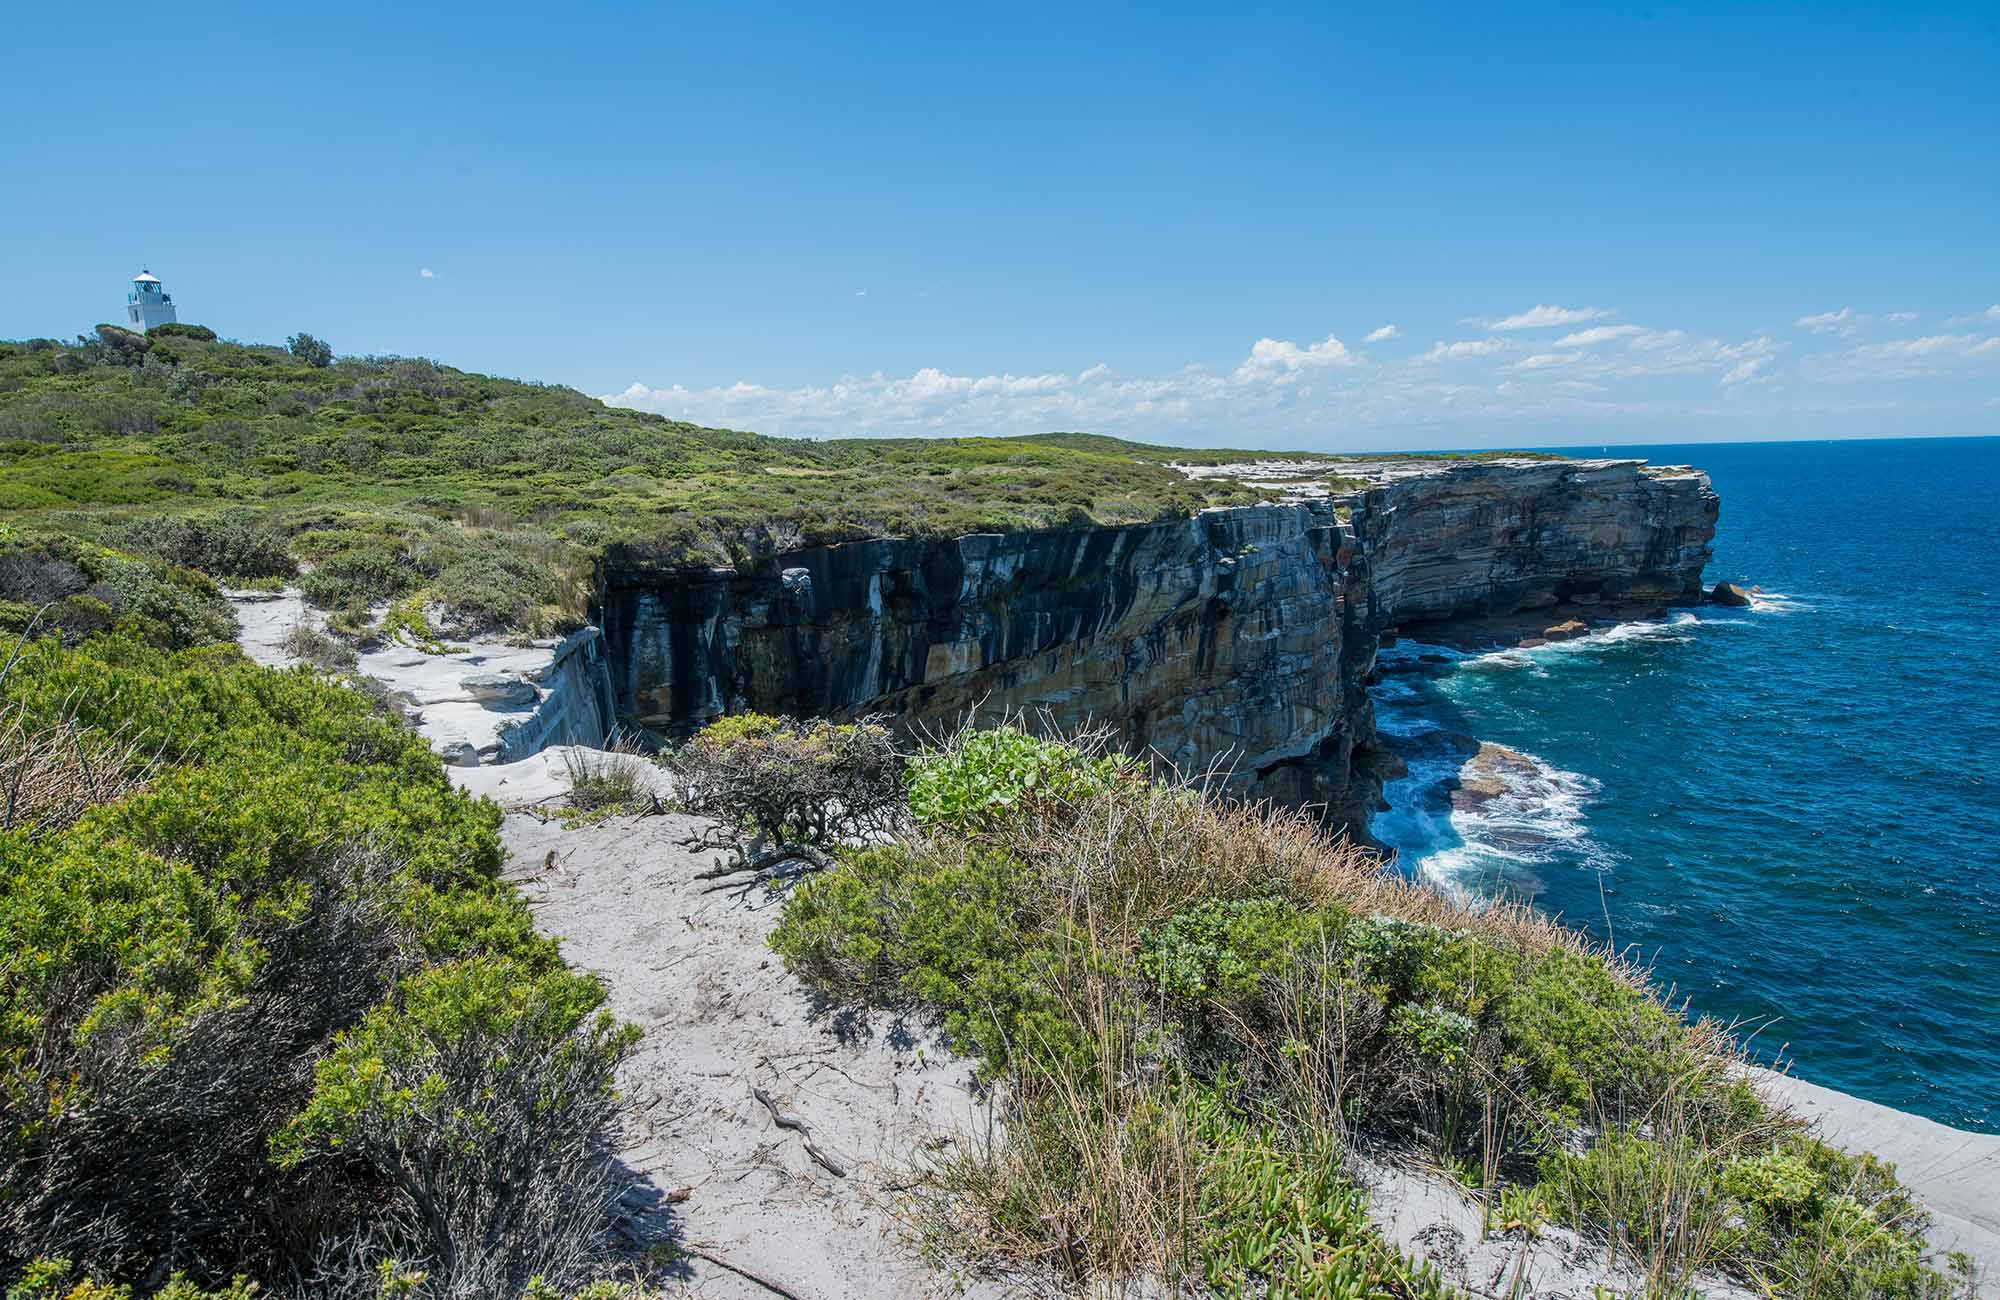 Views along the coastline, Kamay Botany Bay National Park. Photo: John Spencer